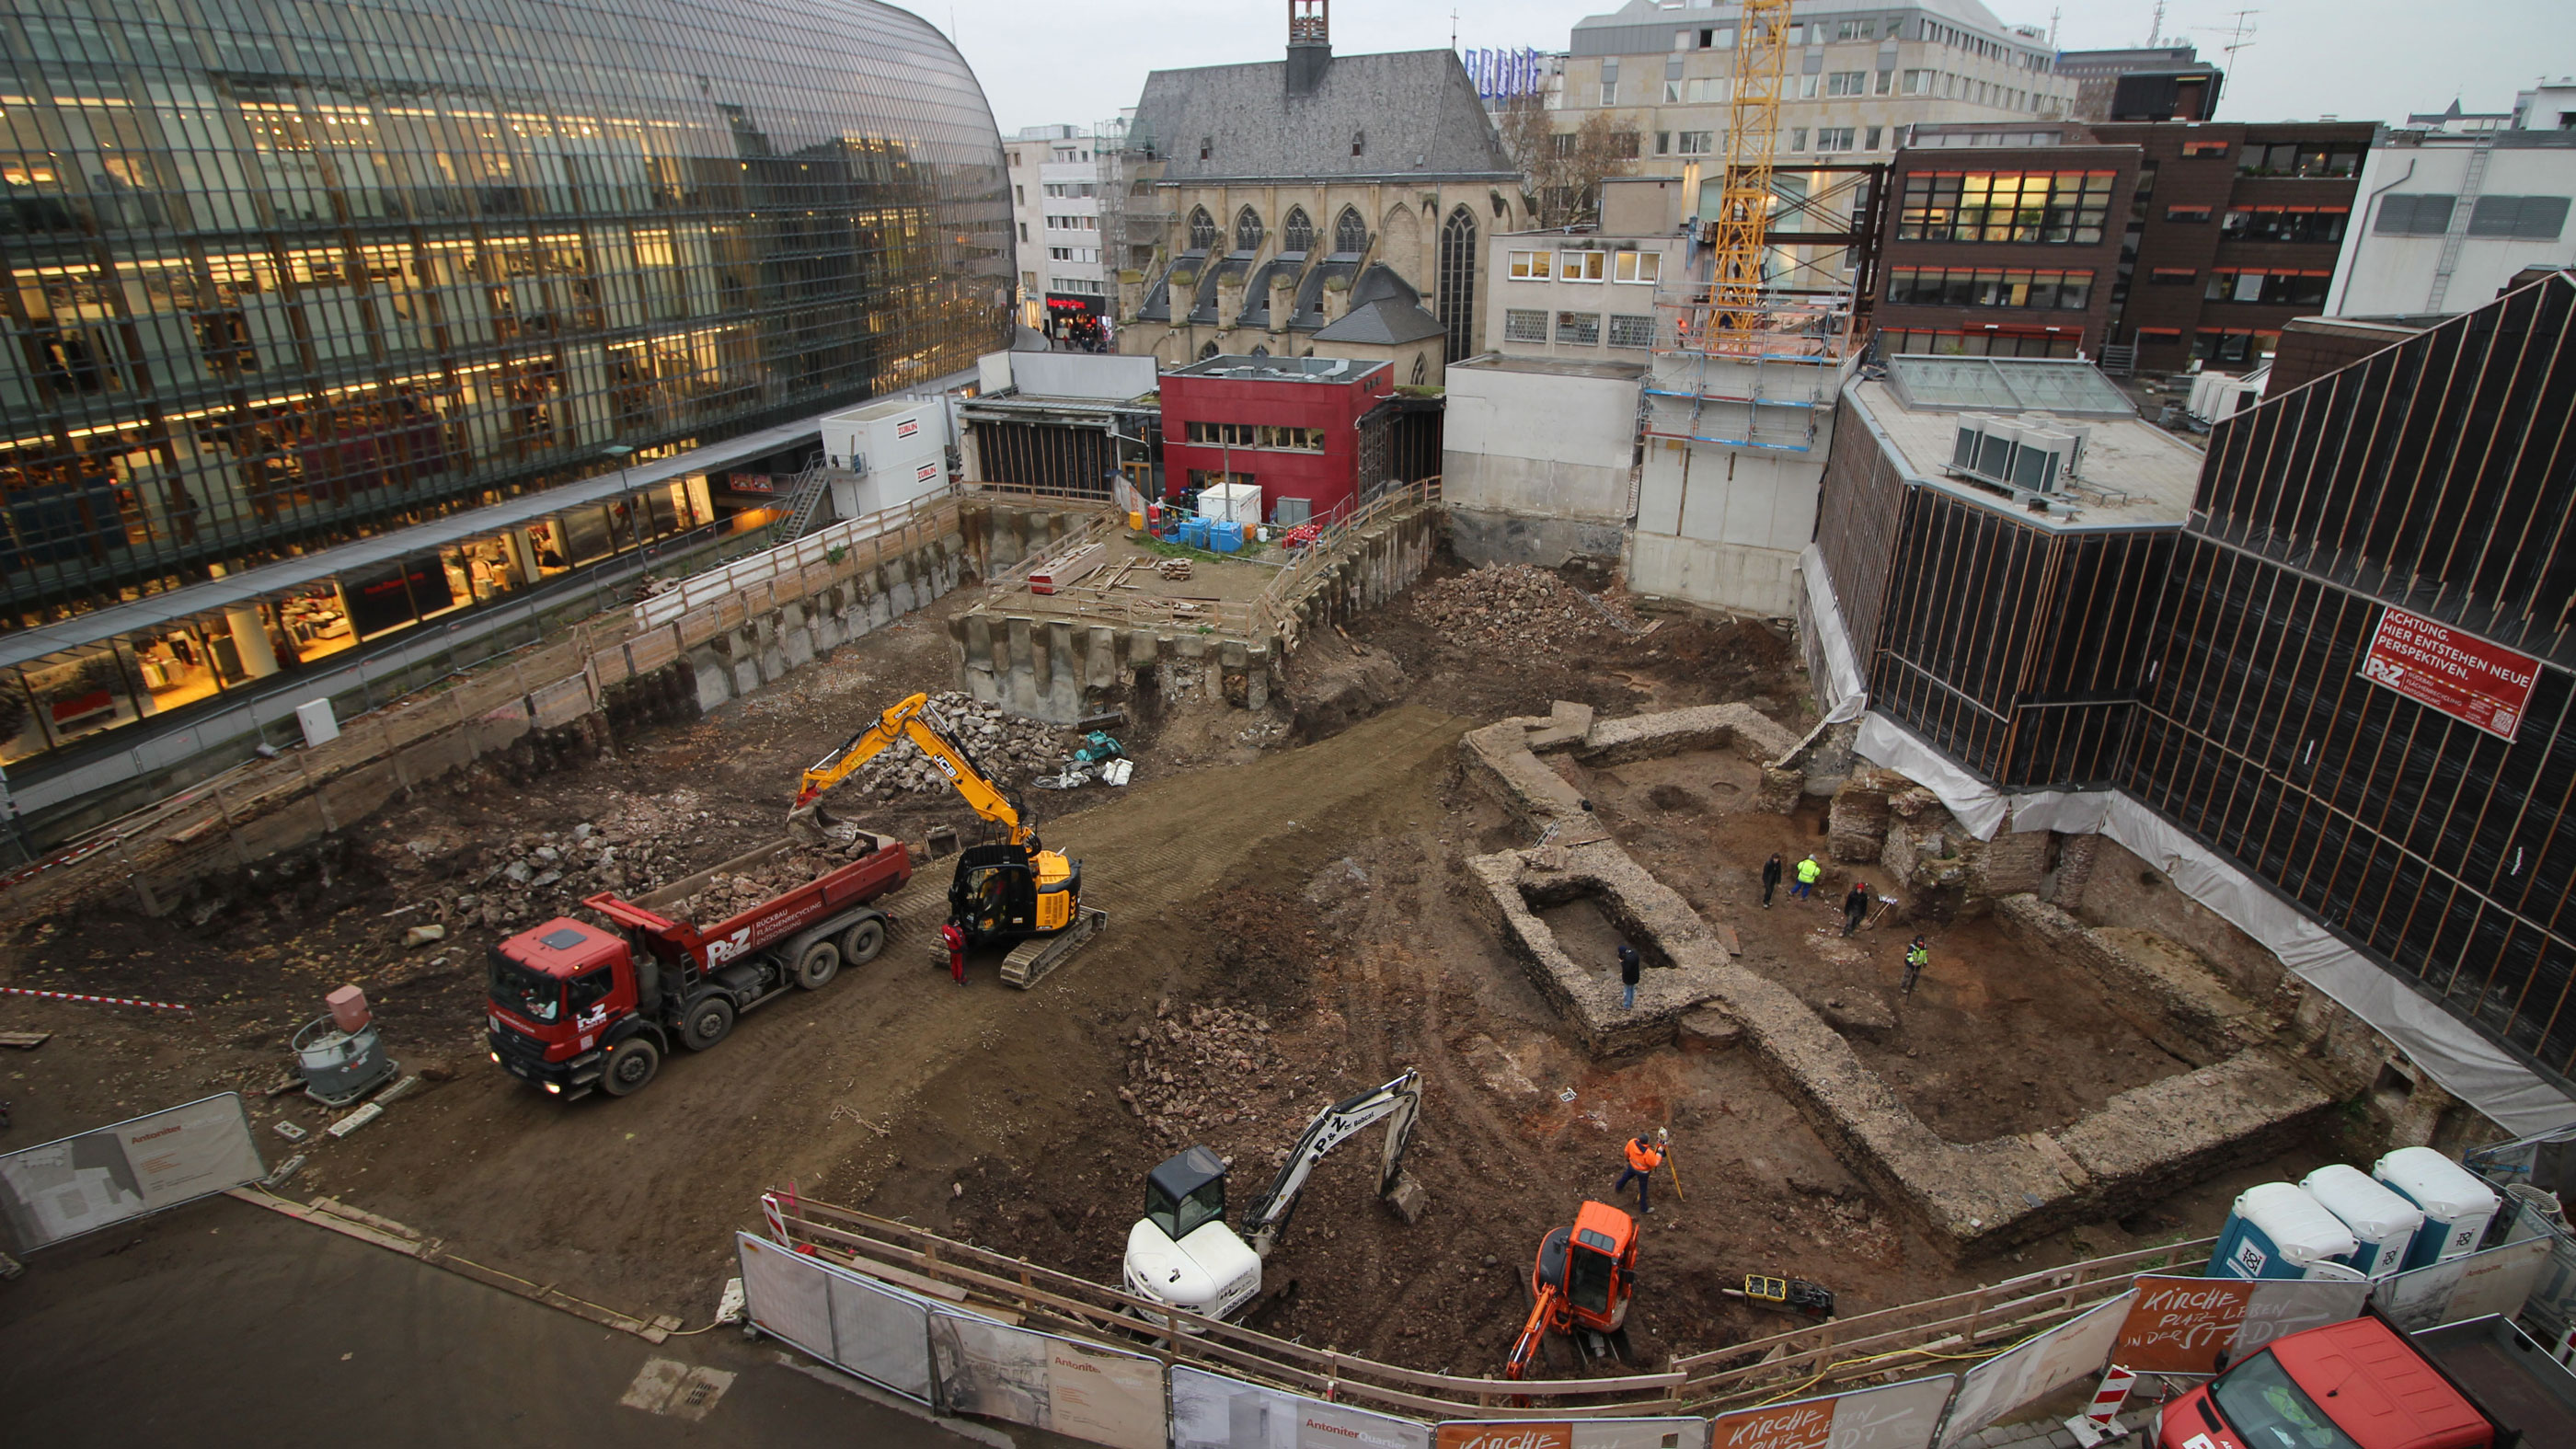 Ancient Roman Library Discovered During Construction in Germany